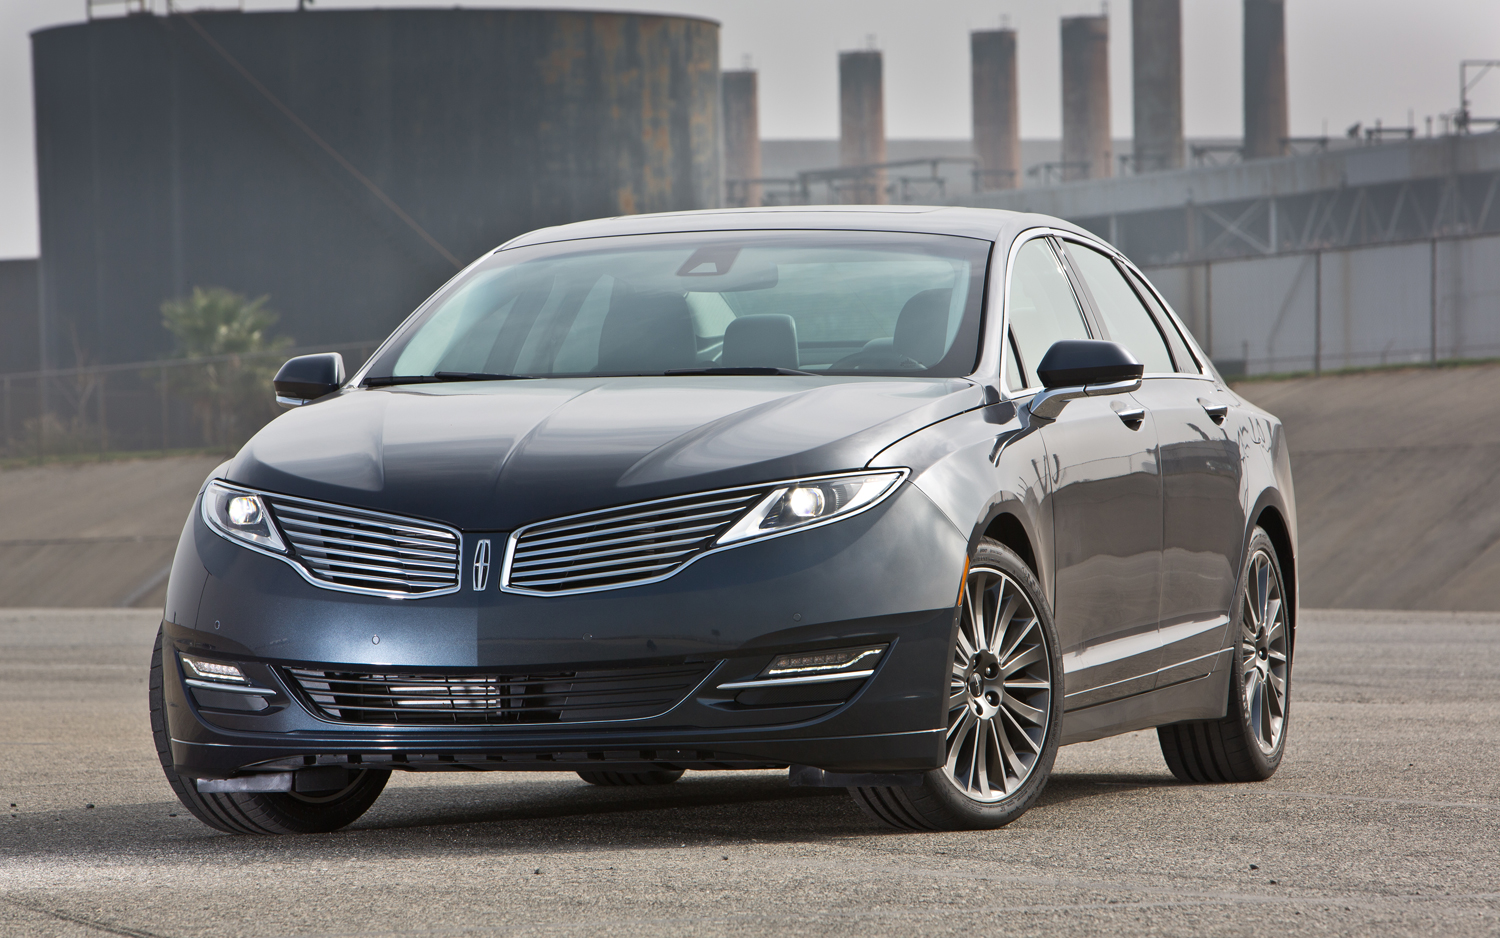 The Best Of Cars: Lincoln MKZ 2013